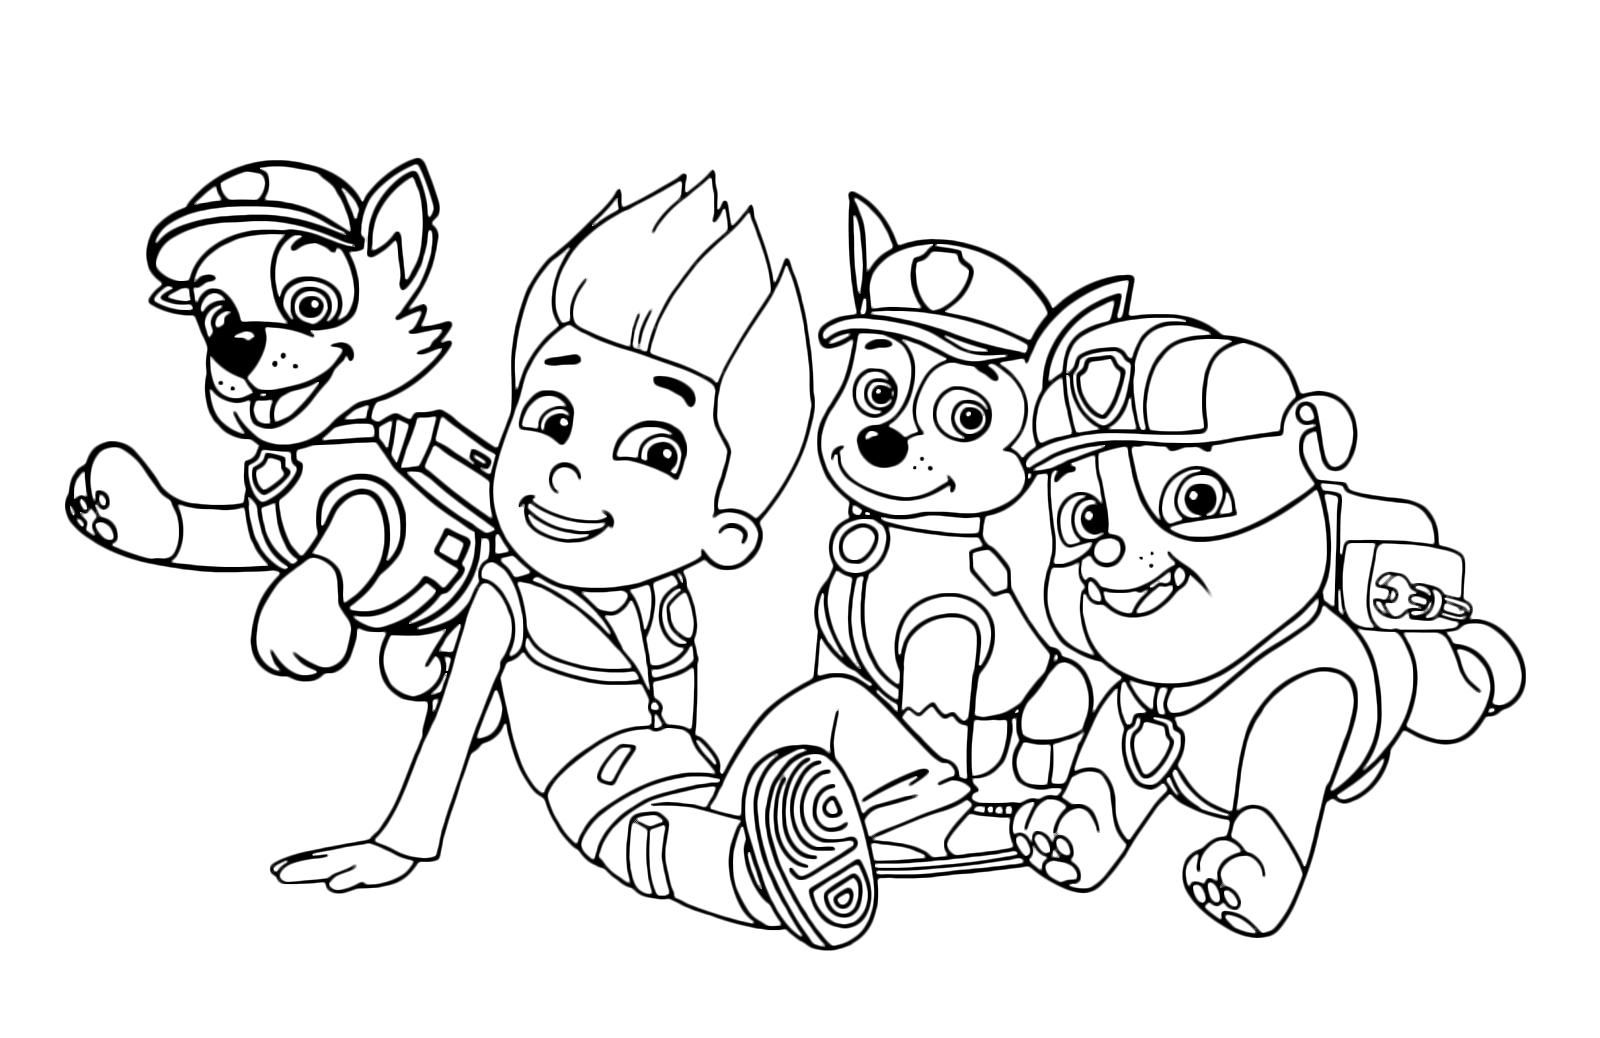 48++ Chase paw patrol colouring sheet ideas